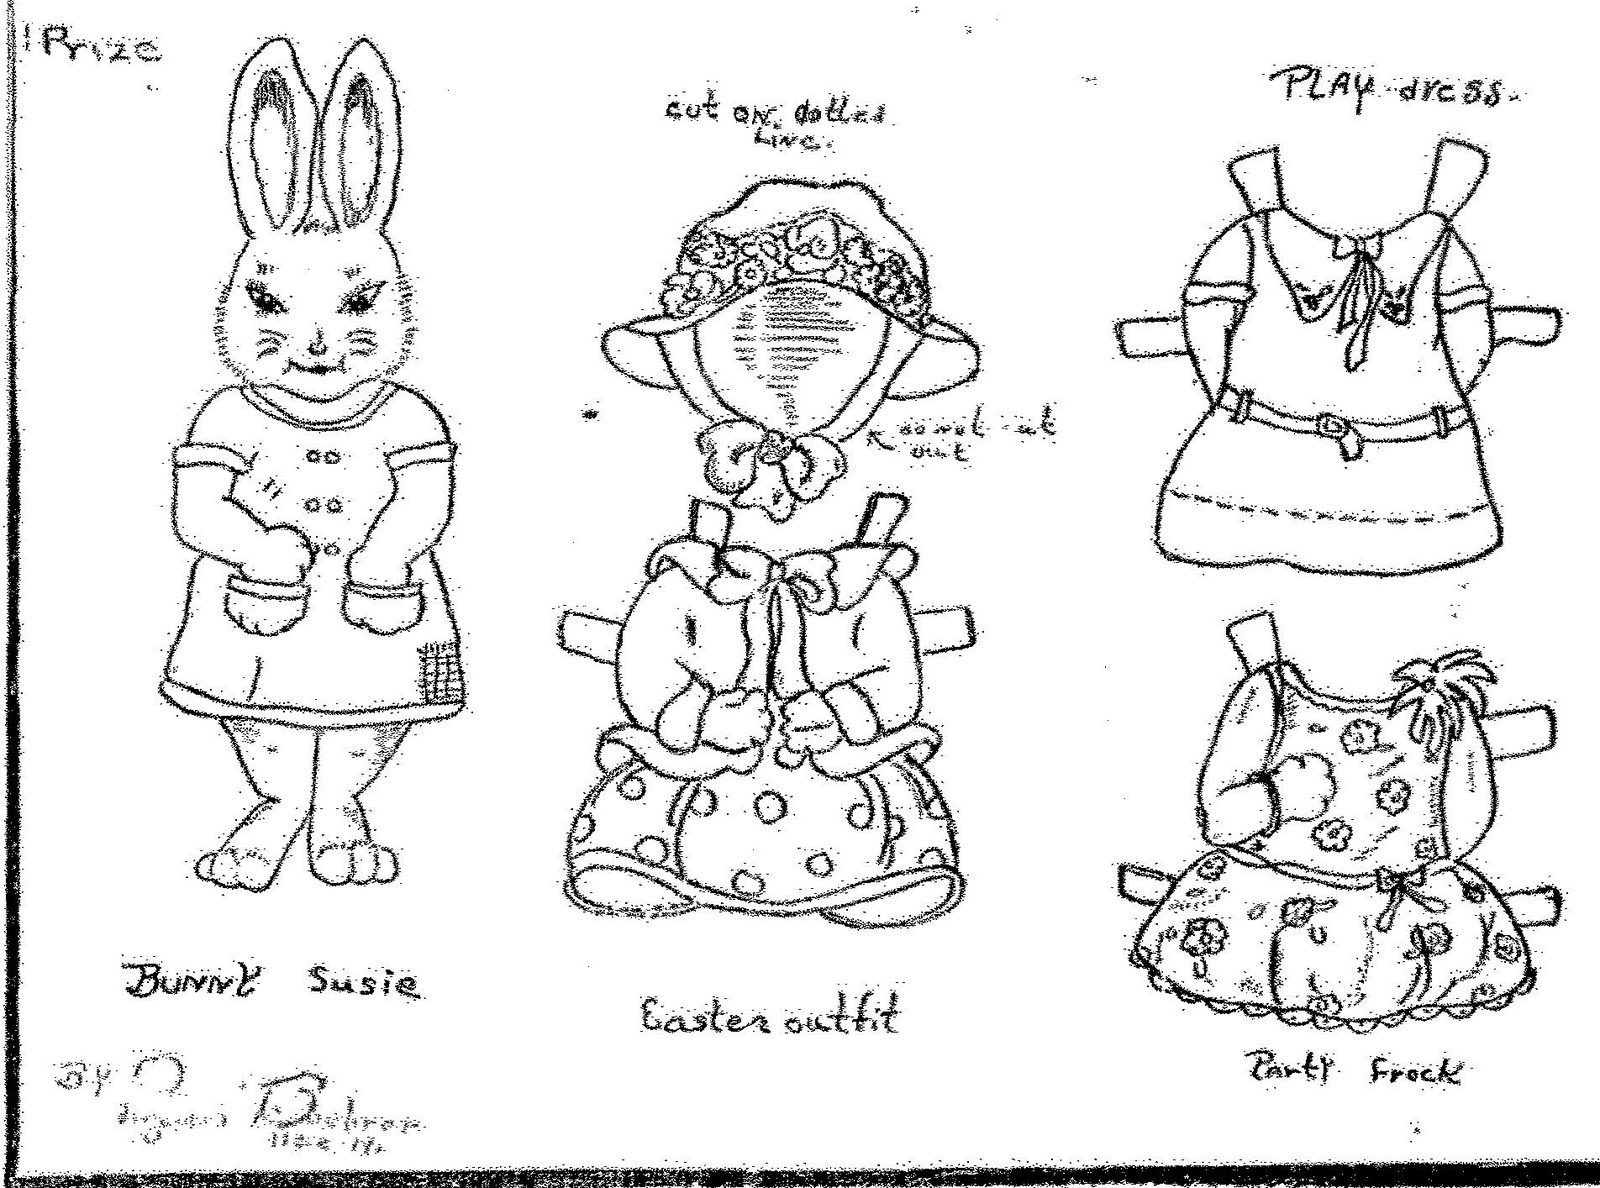 animal coloring pages doll place | Mostly Paper Dolls: A RABBIT A DAY . . . Miss Susie